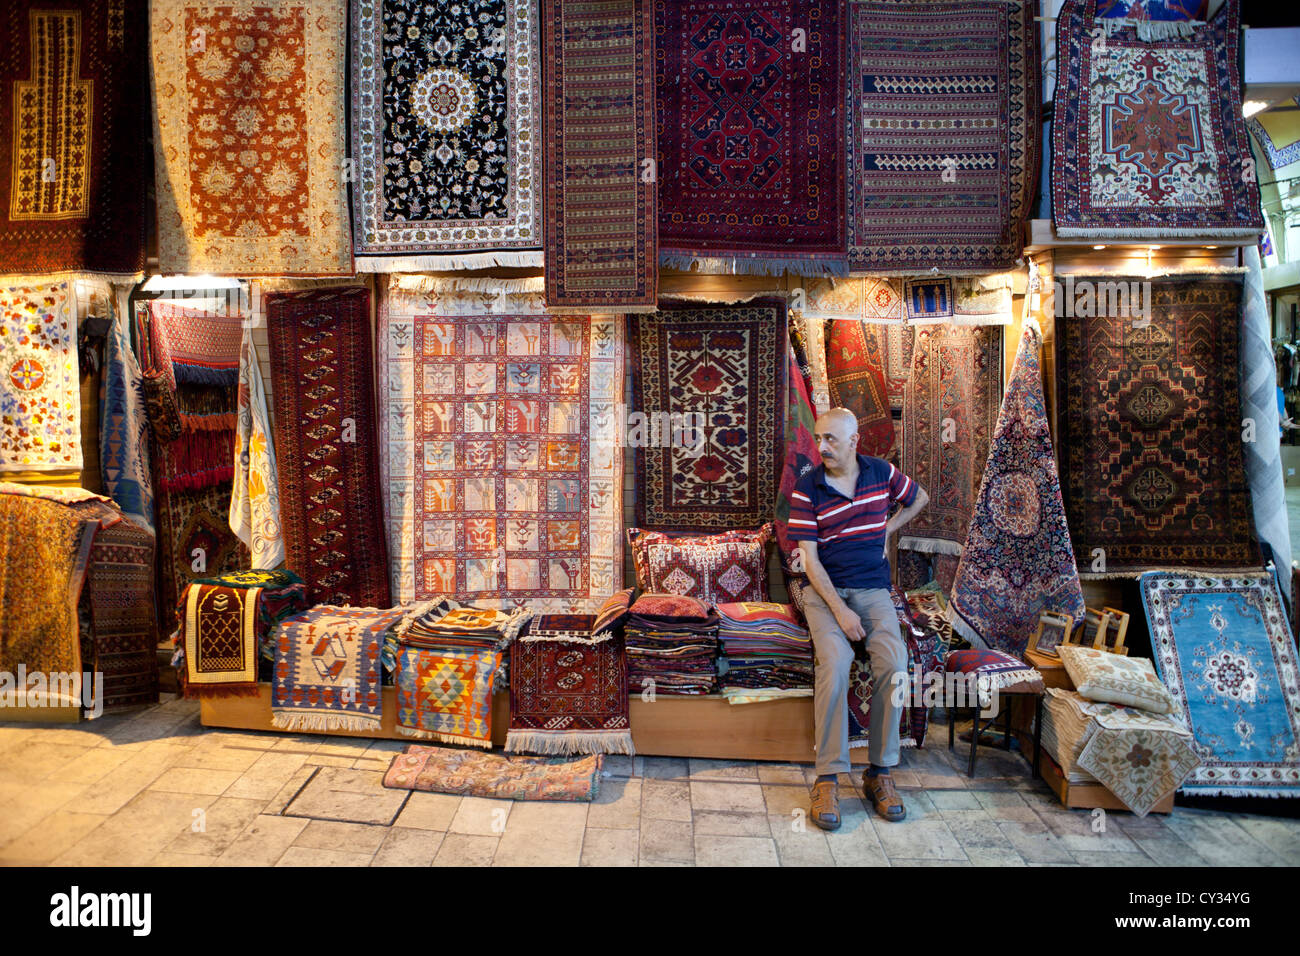 rugs craftmanship skill design carpet pattern Turk - Stock Image